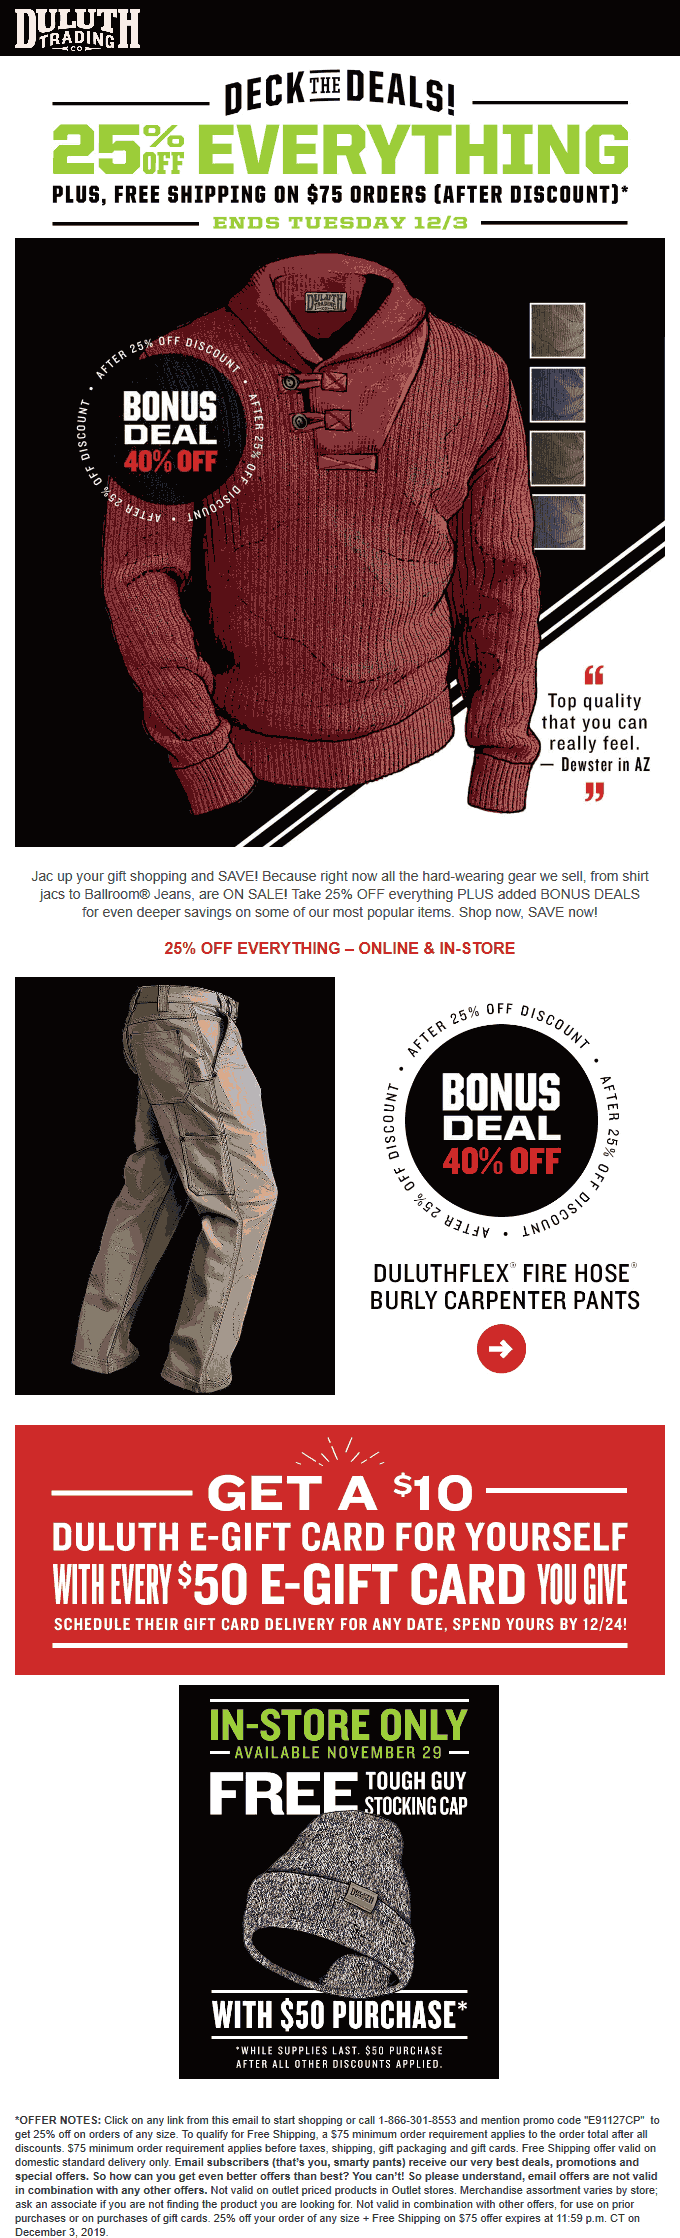 Duluth Trading Co coupons & promo code for [April 2021]